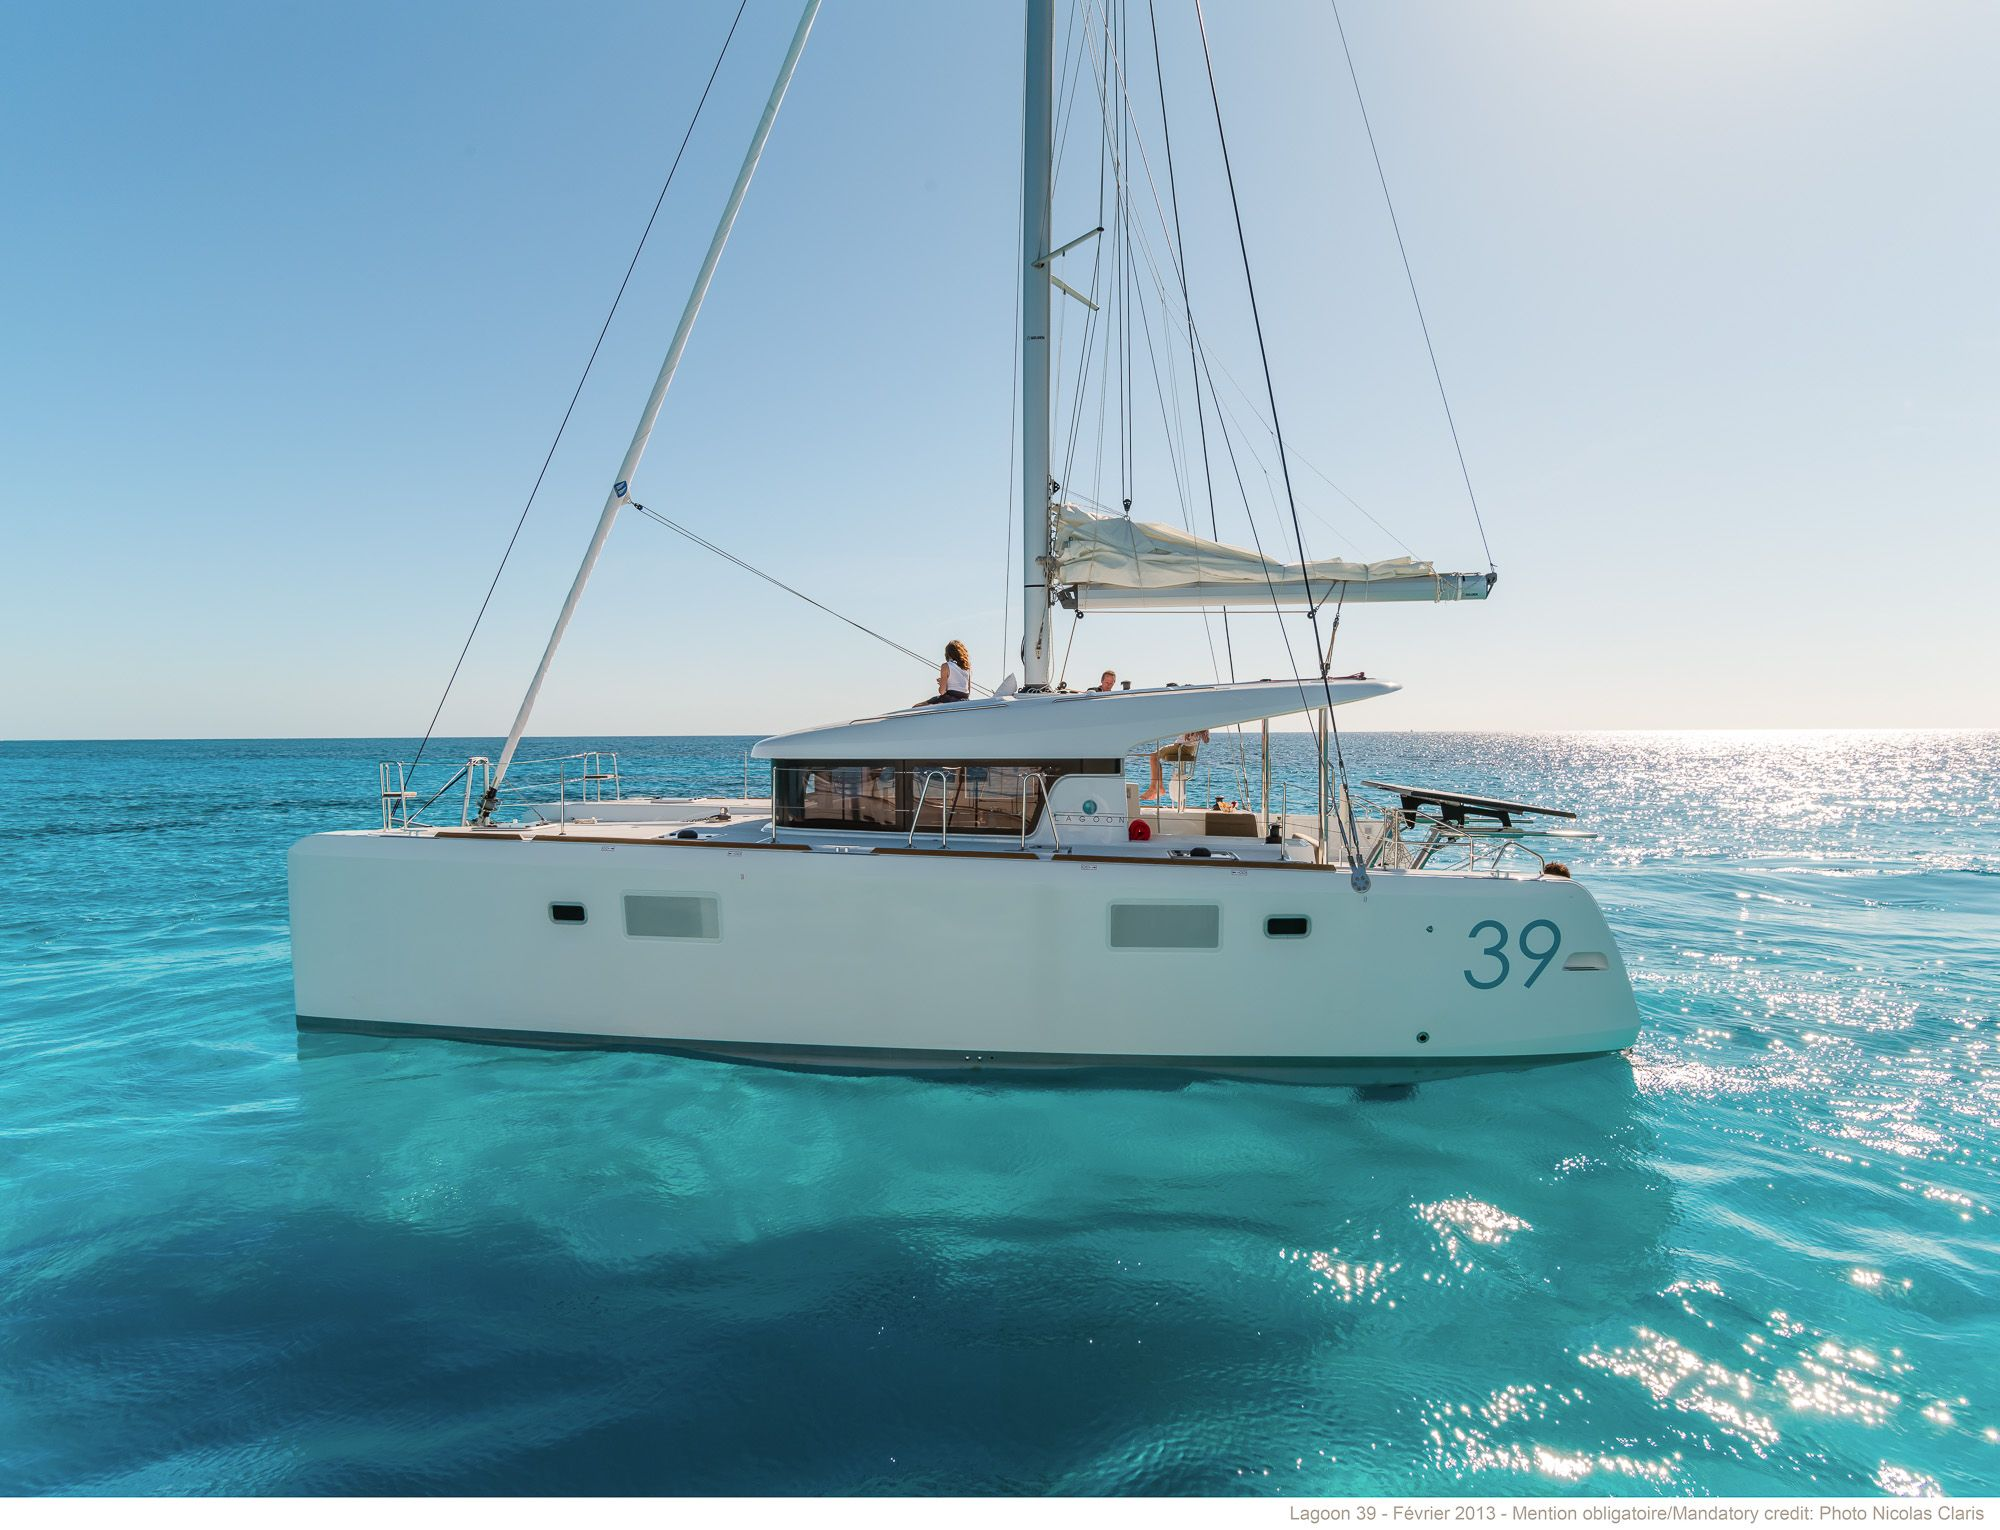 Lagoon Catamarans Building Sale And Chartering Of Luxury Cruising Catamarans Sailing Yacht Sailing Catamaran